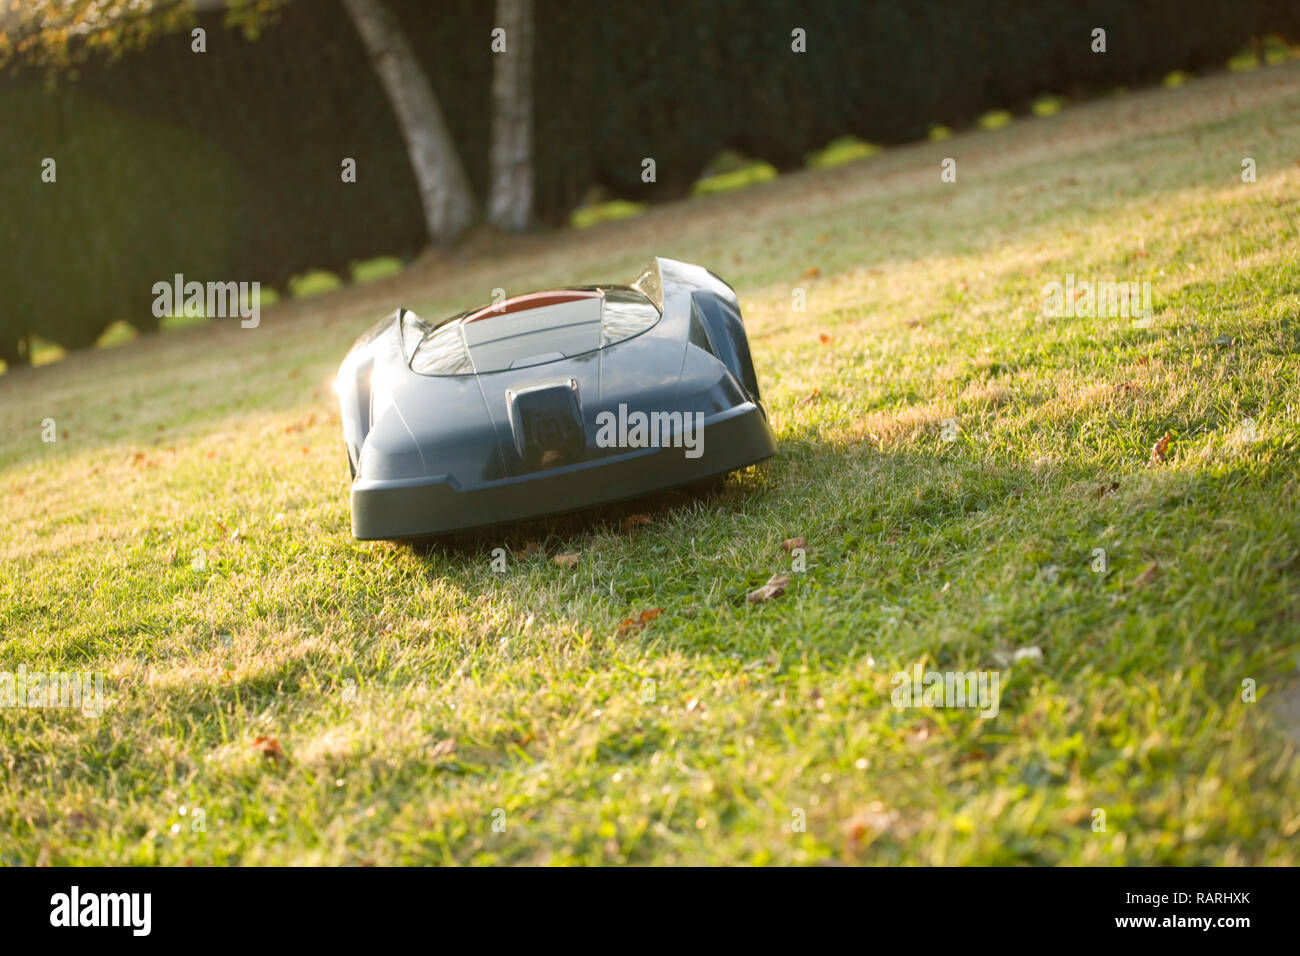 Automatic robot lawn mower cutting grass heading towards camera, angled shot - Stock Image